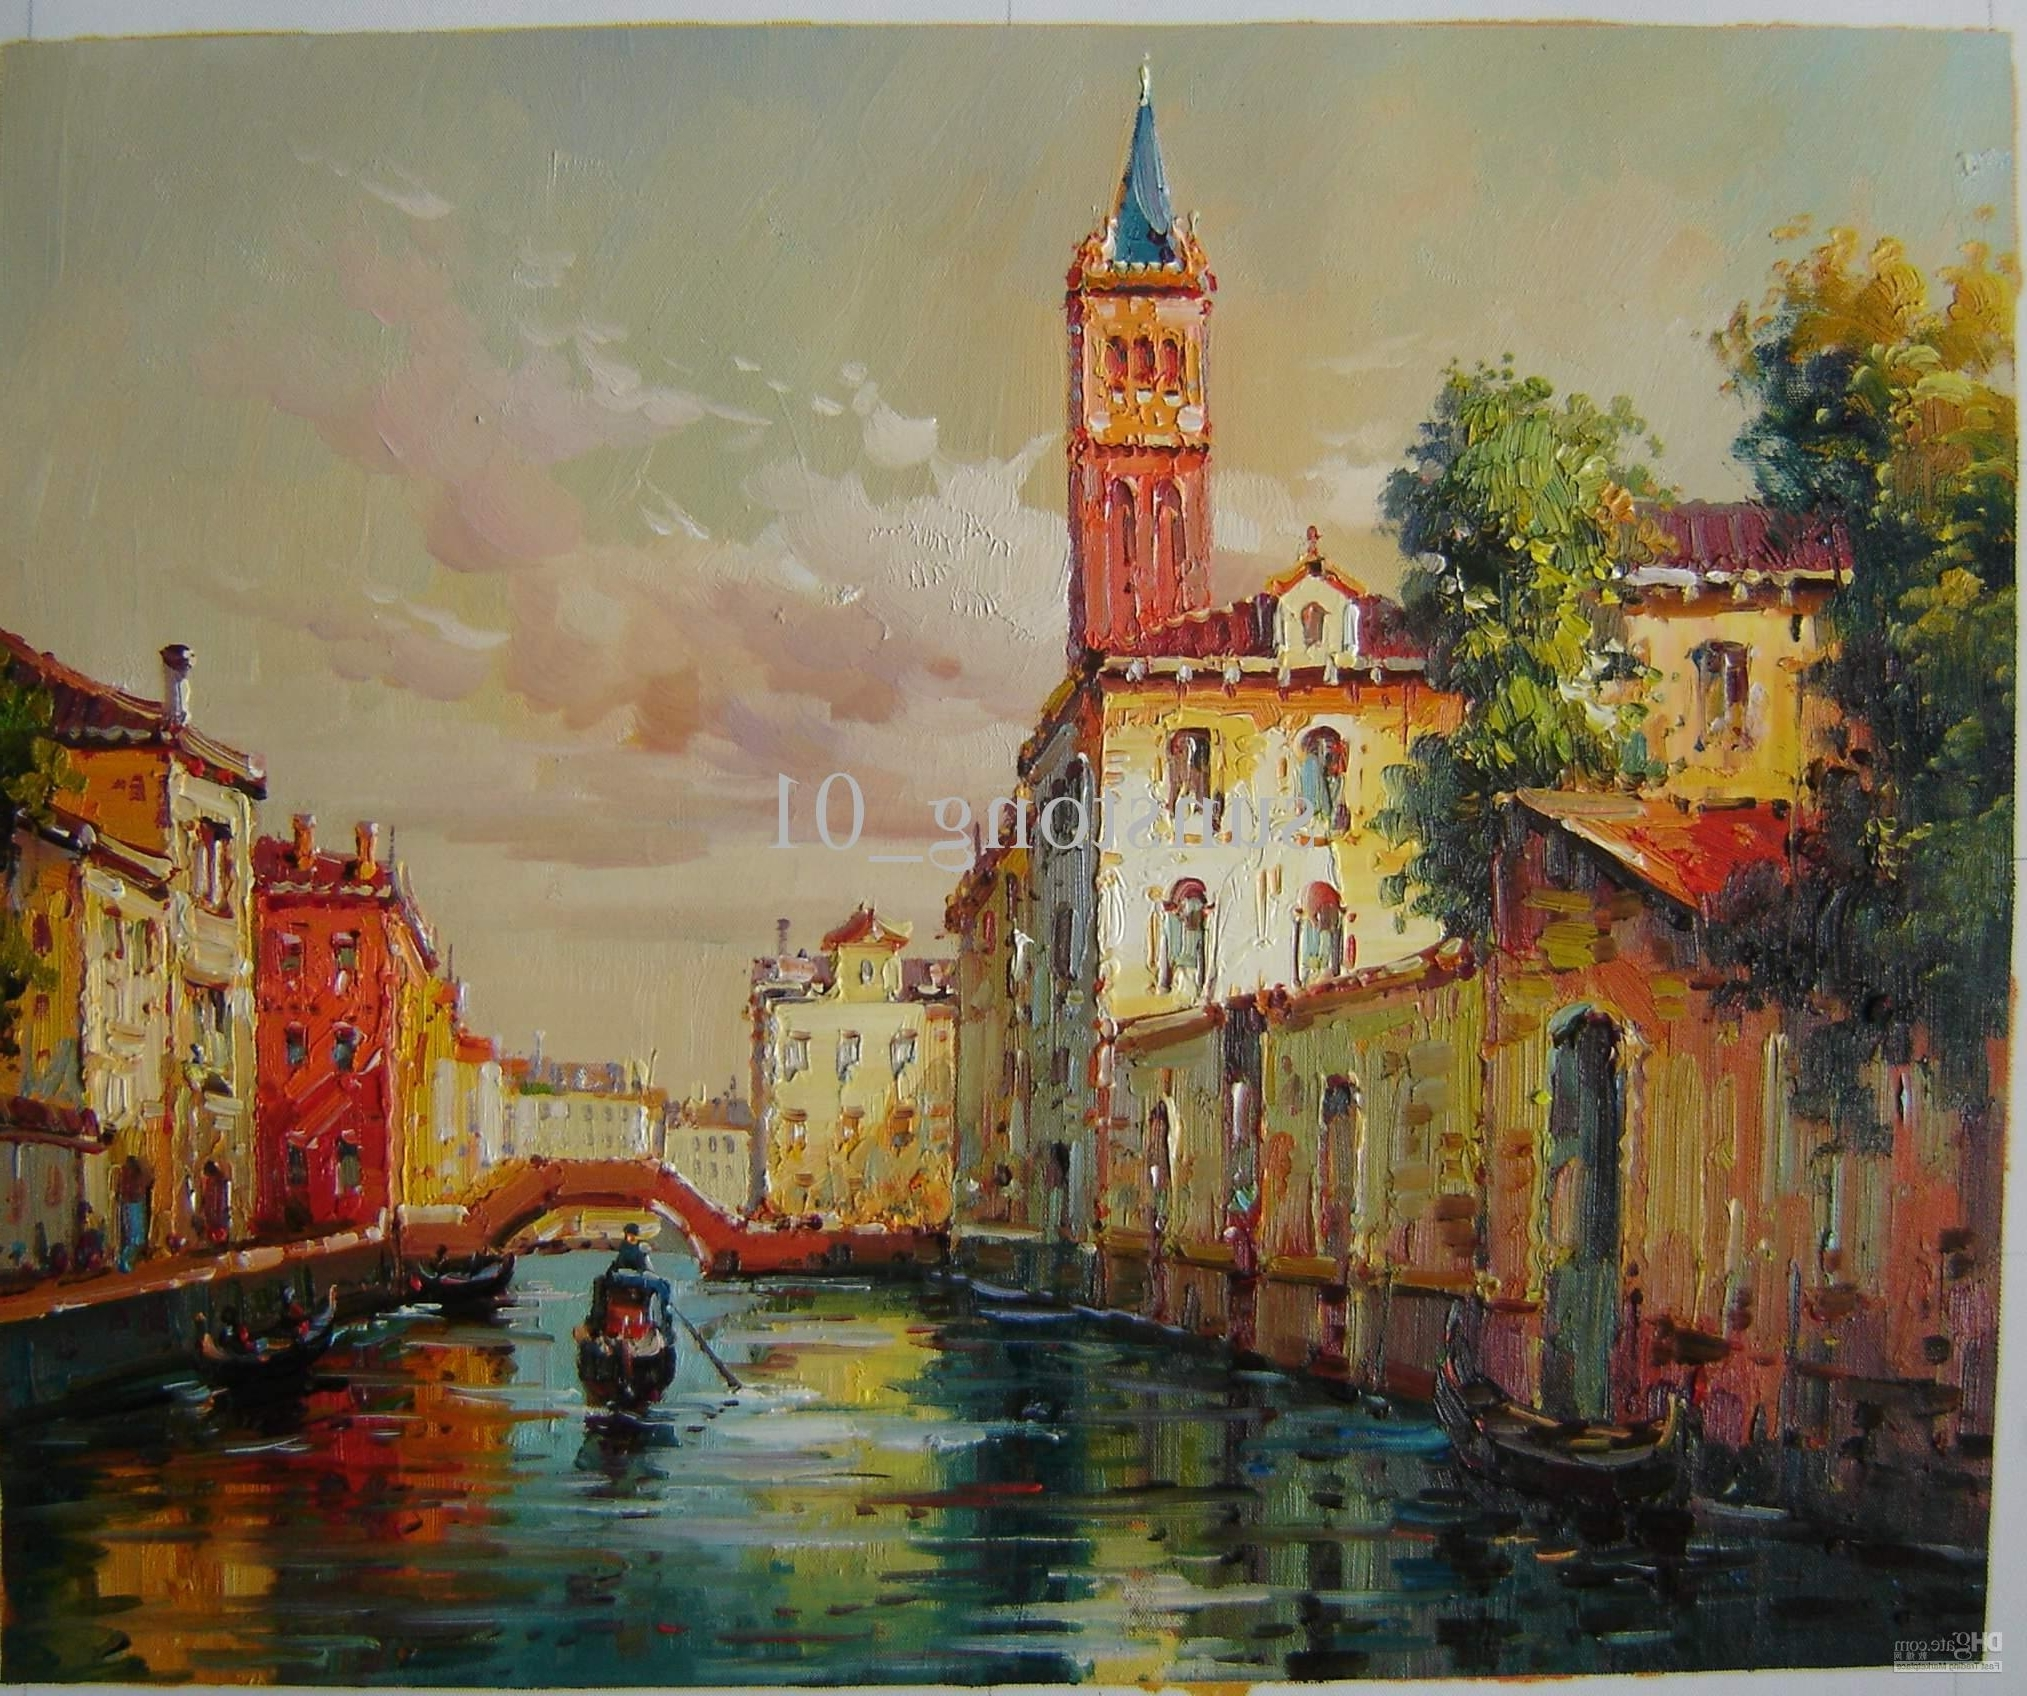 Impression Vinice Oil Painting Vinice Scenery Oil Painting Home In Widely Used Italian Scenery Wall Art (View 4 of 15)